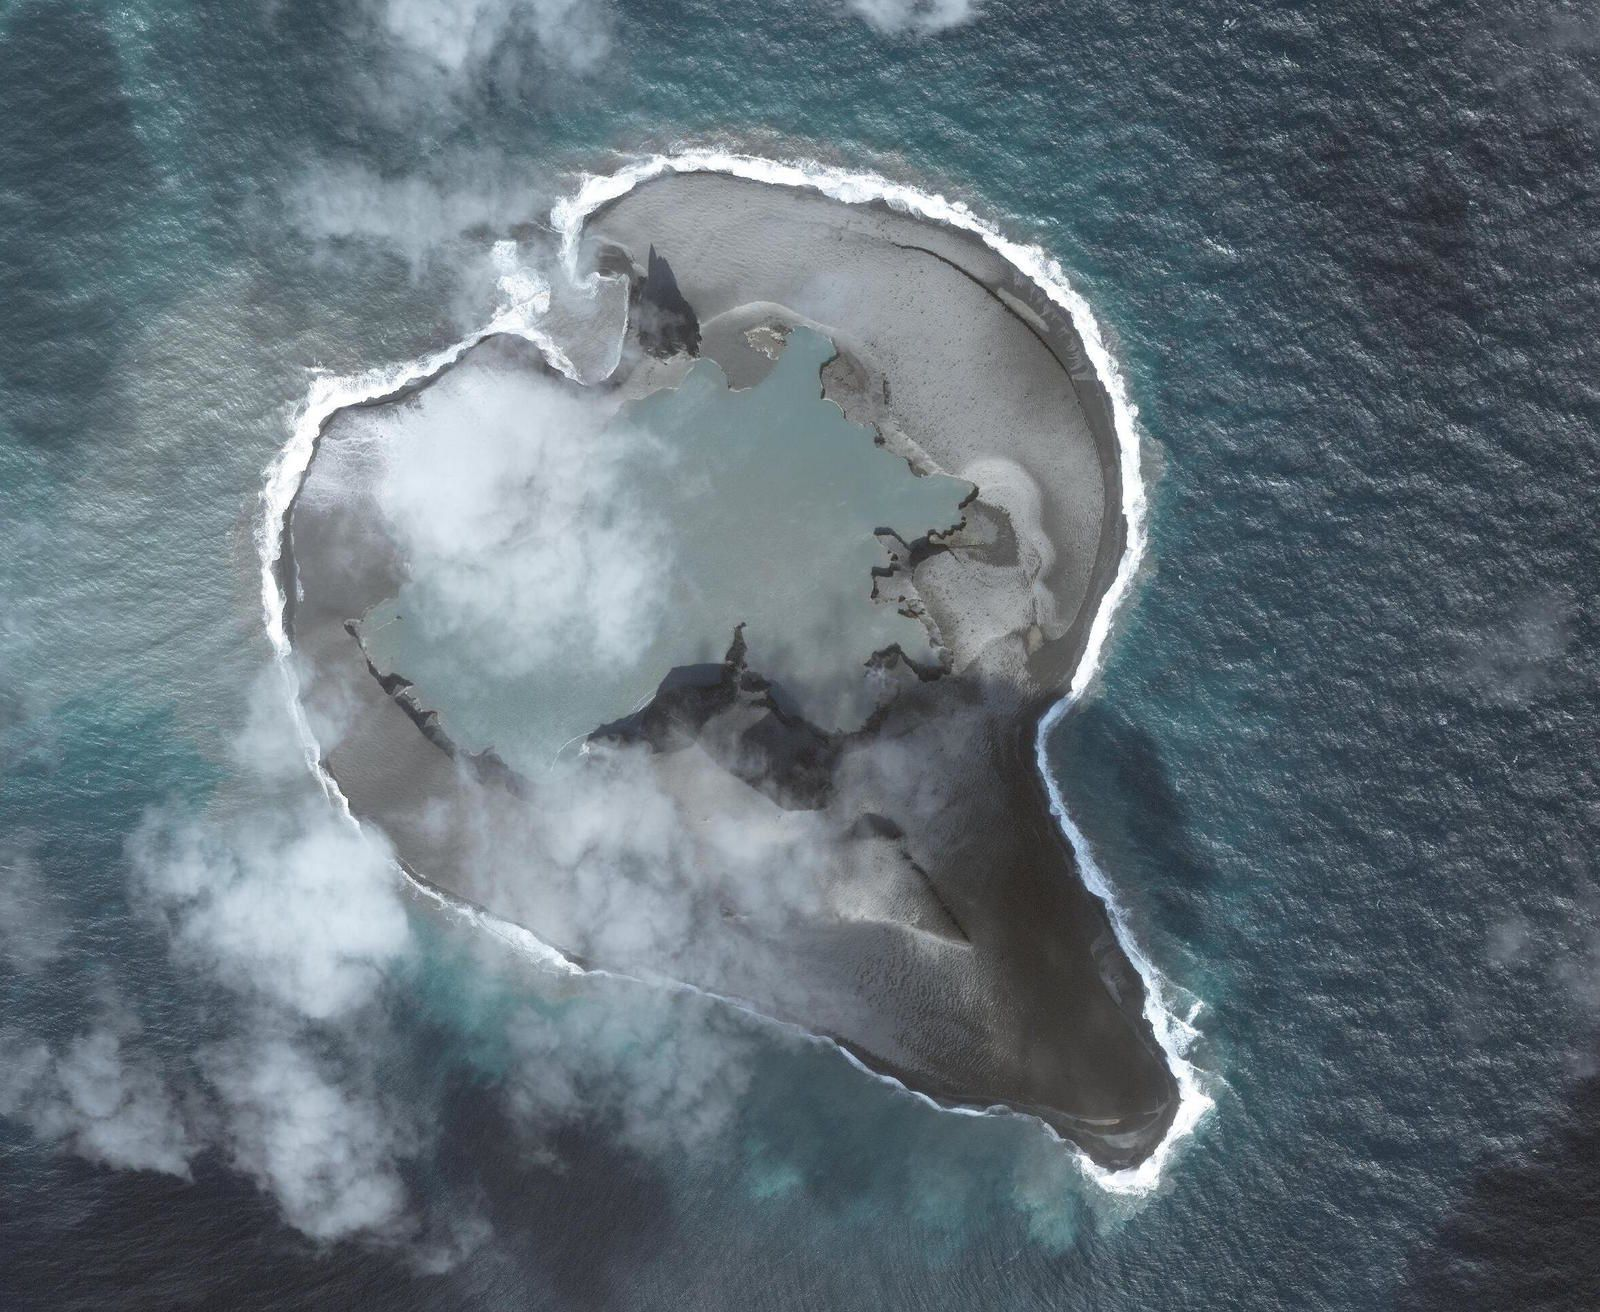 Bogoslof - changements morphologiques au 11.03.2017 - un clic pour agrandir  - photo Dave Schneider / AVO / Worlview 2 sat  Image data provided under Digital Globe NextView License.